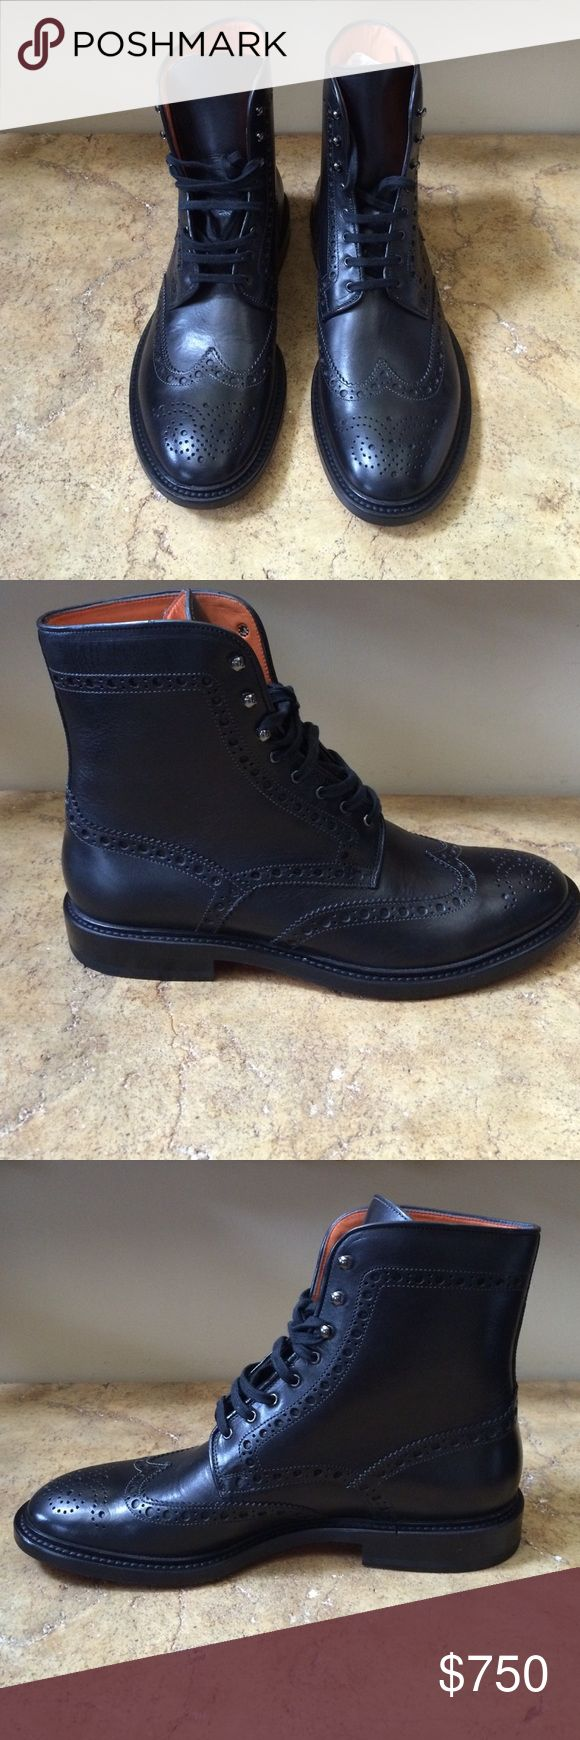 Santoni Men's Black Leather Boots Made in Italy Santoni Shoes Boots